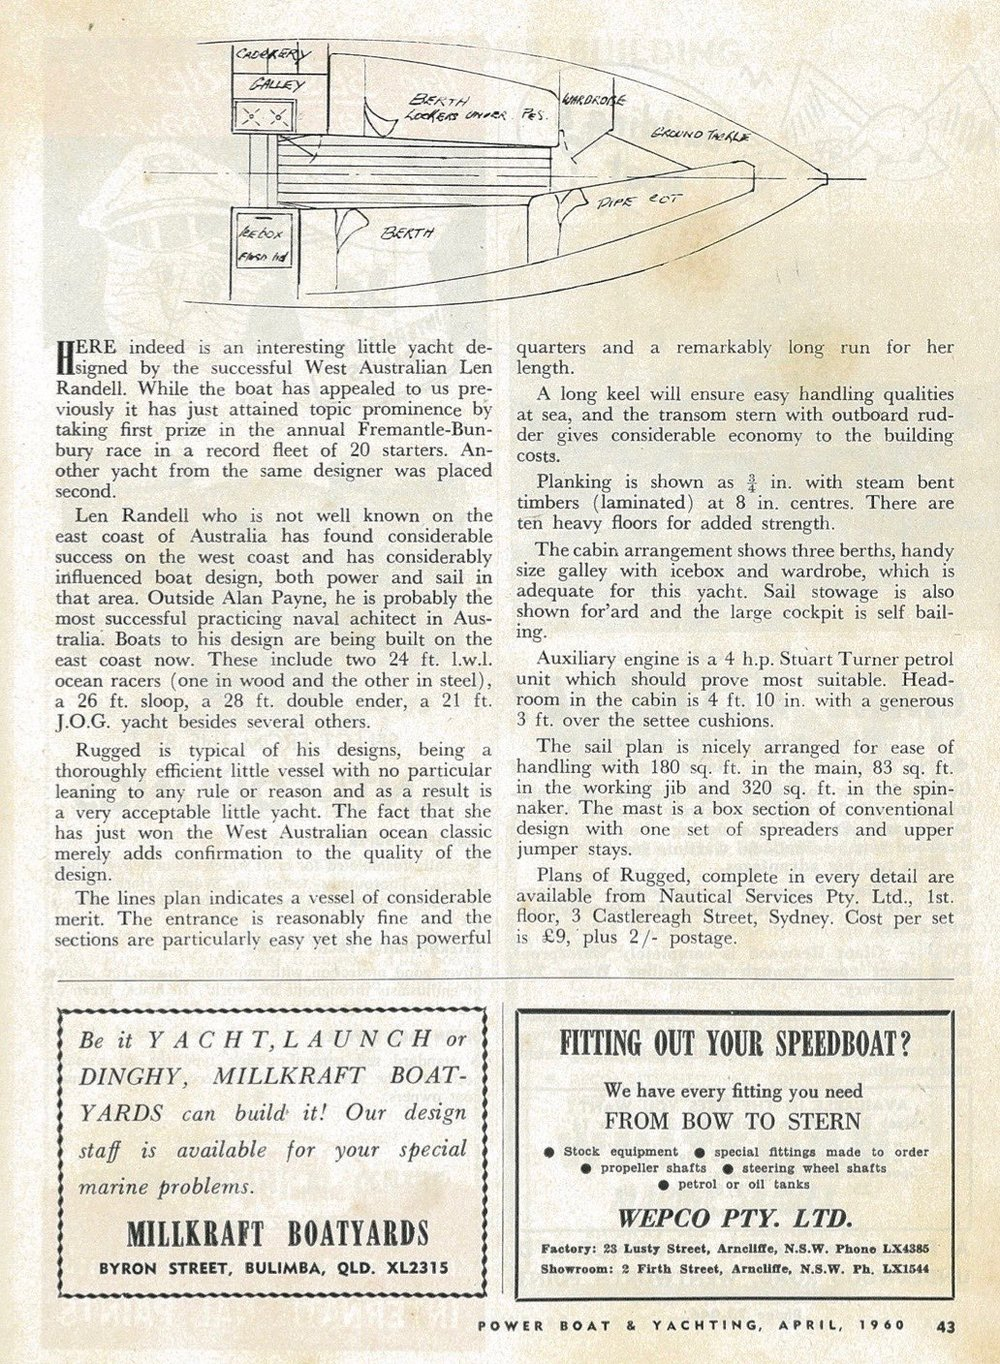 The review of the Rugged design published in 1960 in Power Boat & Yachting Magazine